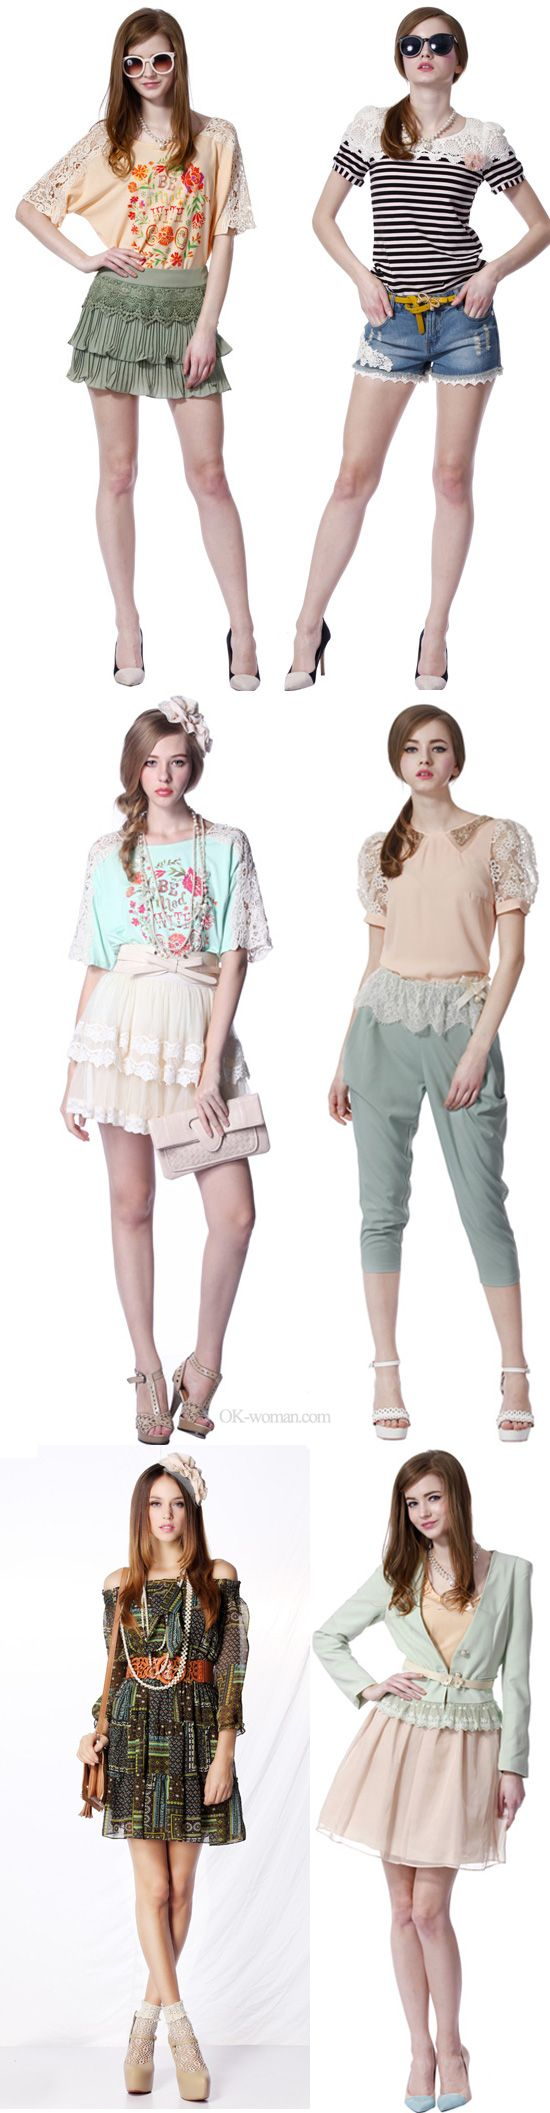 27 Best Vintage Clothing For Women Images On Pinterest